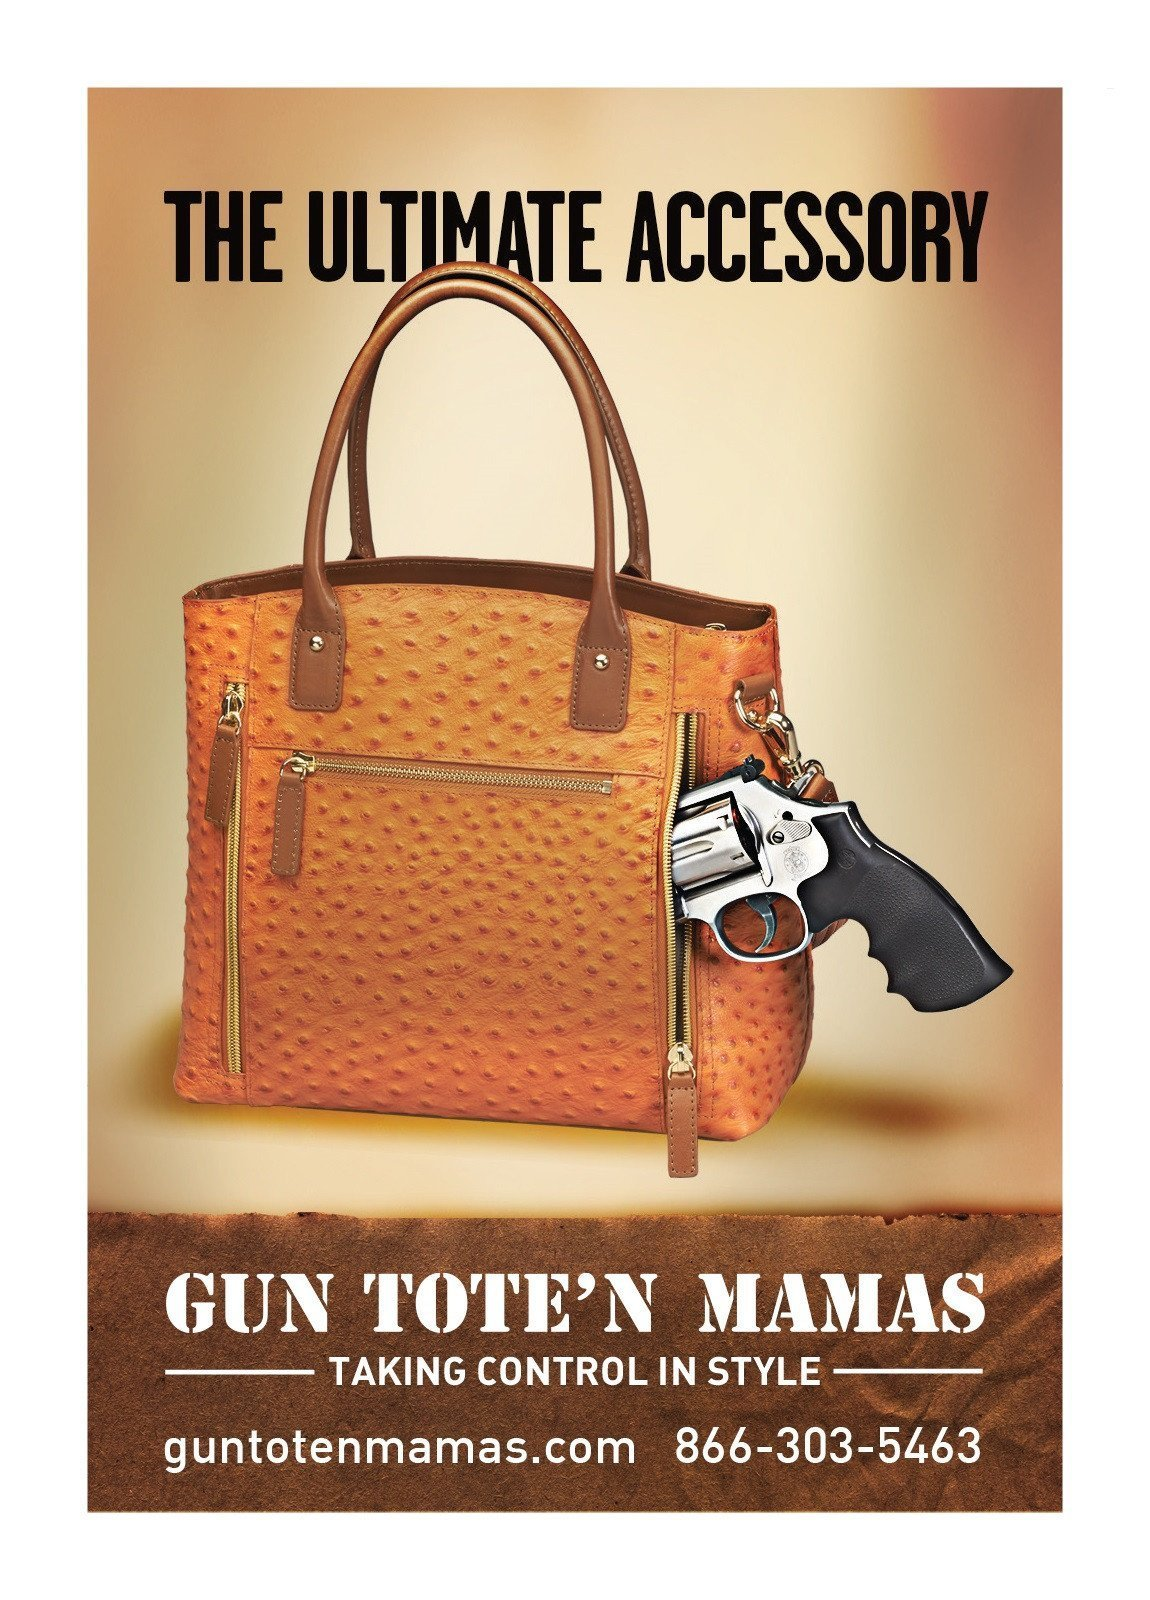 The Ultimate Accessory! The GTM-51 Town Tote